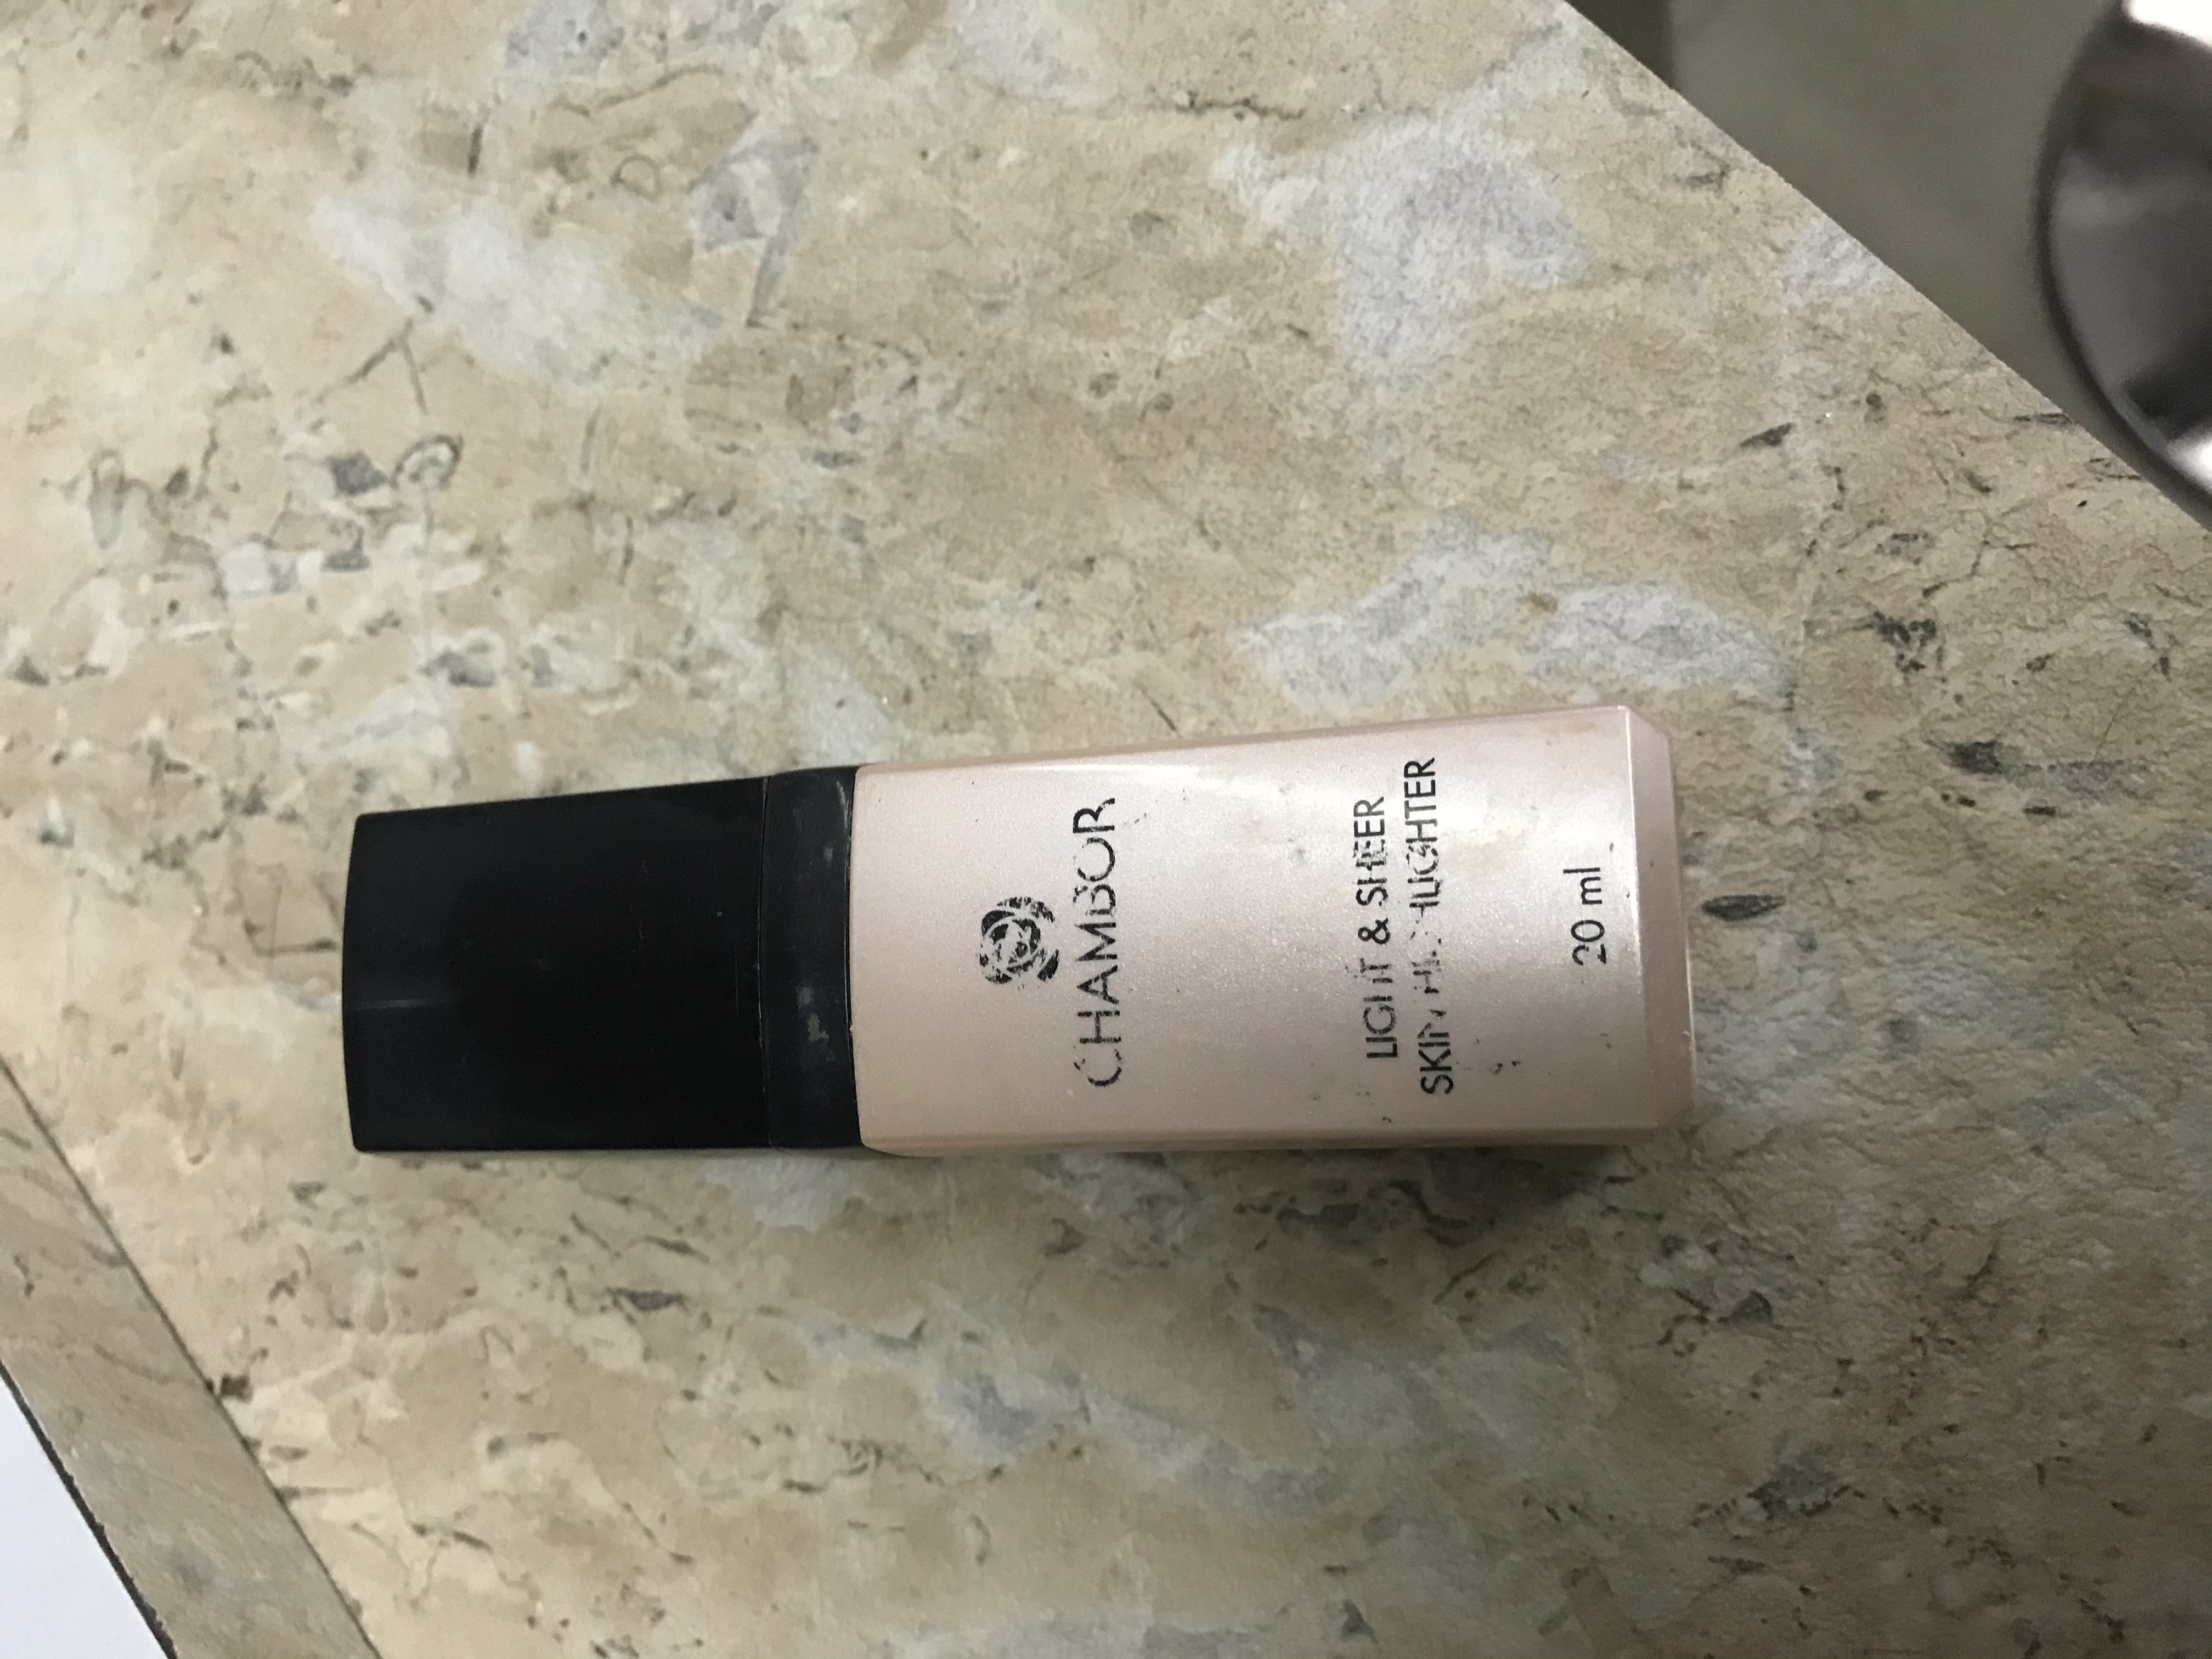 Chambor Light & Sheer Skin Highlighter-Add glow to your Makeup-By womanofbeauty-2